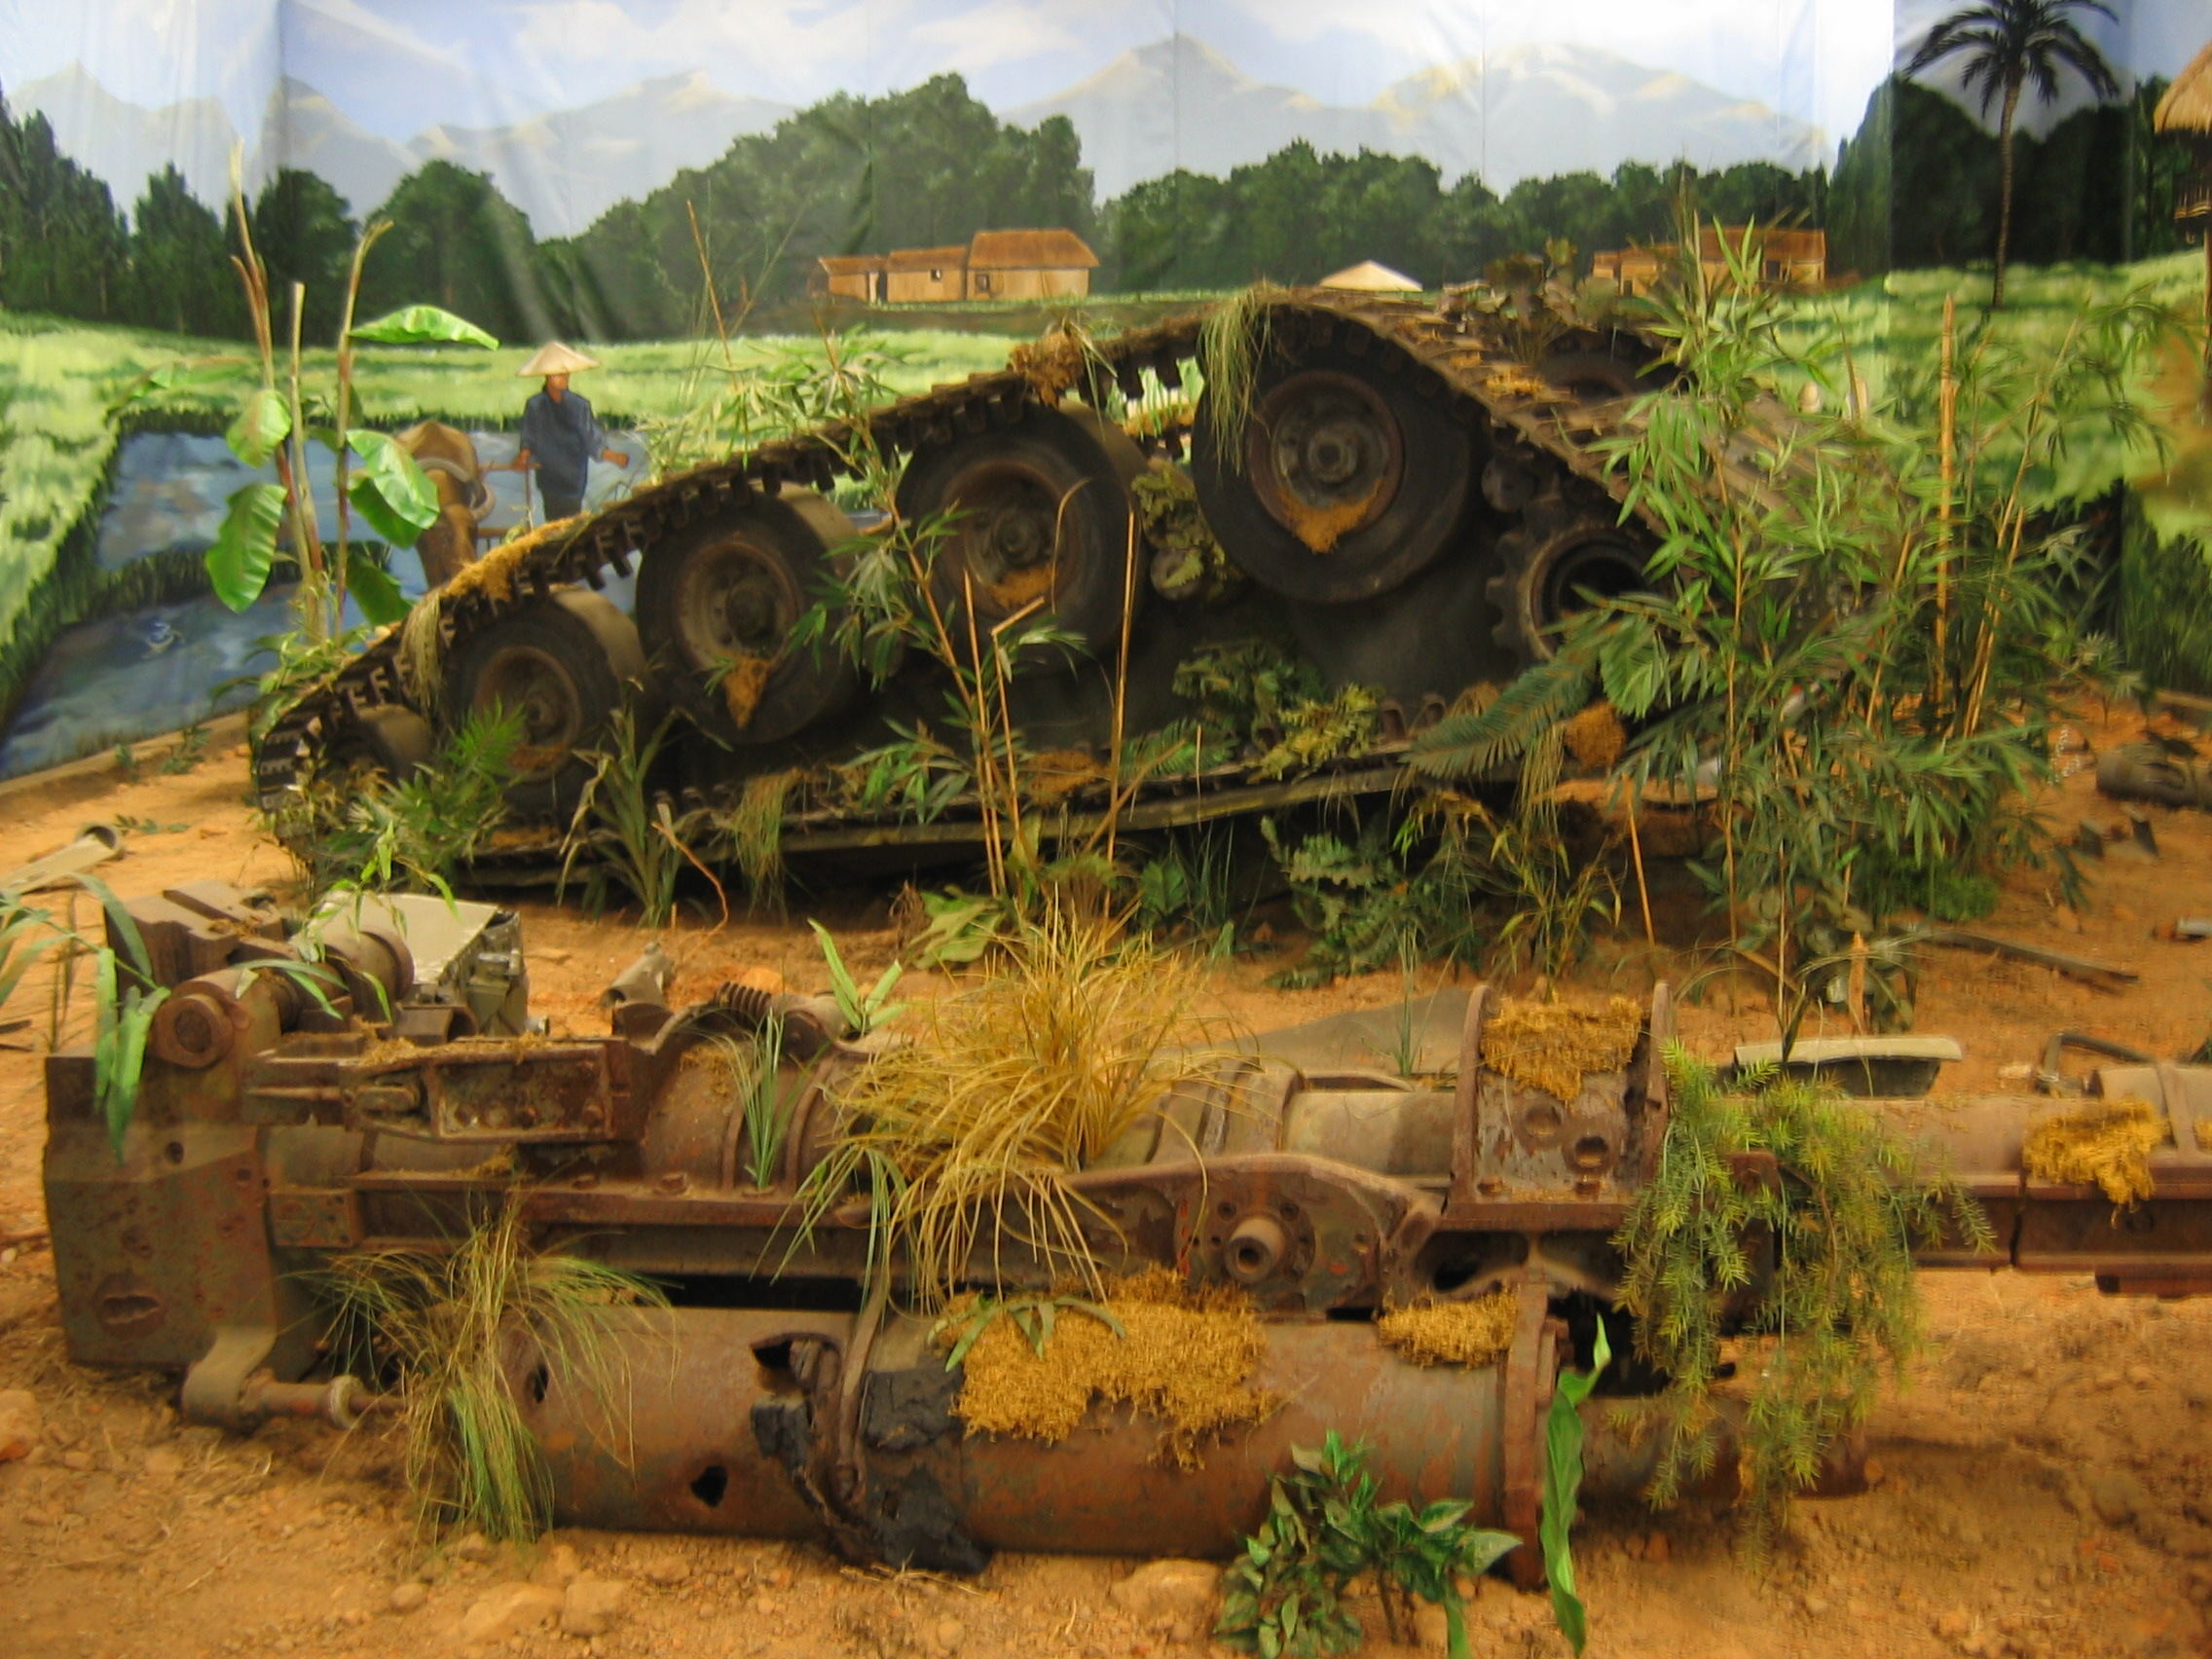 Model Tank Dioramas http://en.wikipedia.org/wiki/File:M56_Diorama_of_Destroyed_M56_at_AAF_Tank_Museum.jpg